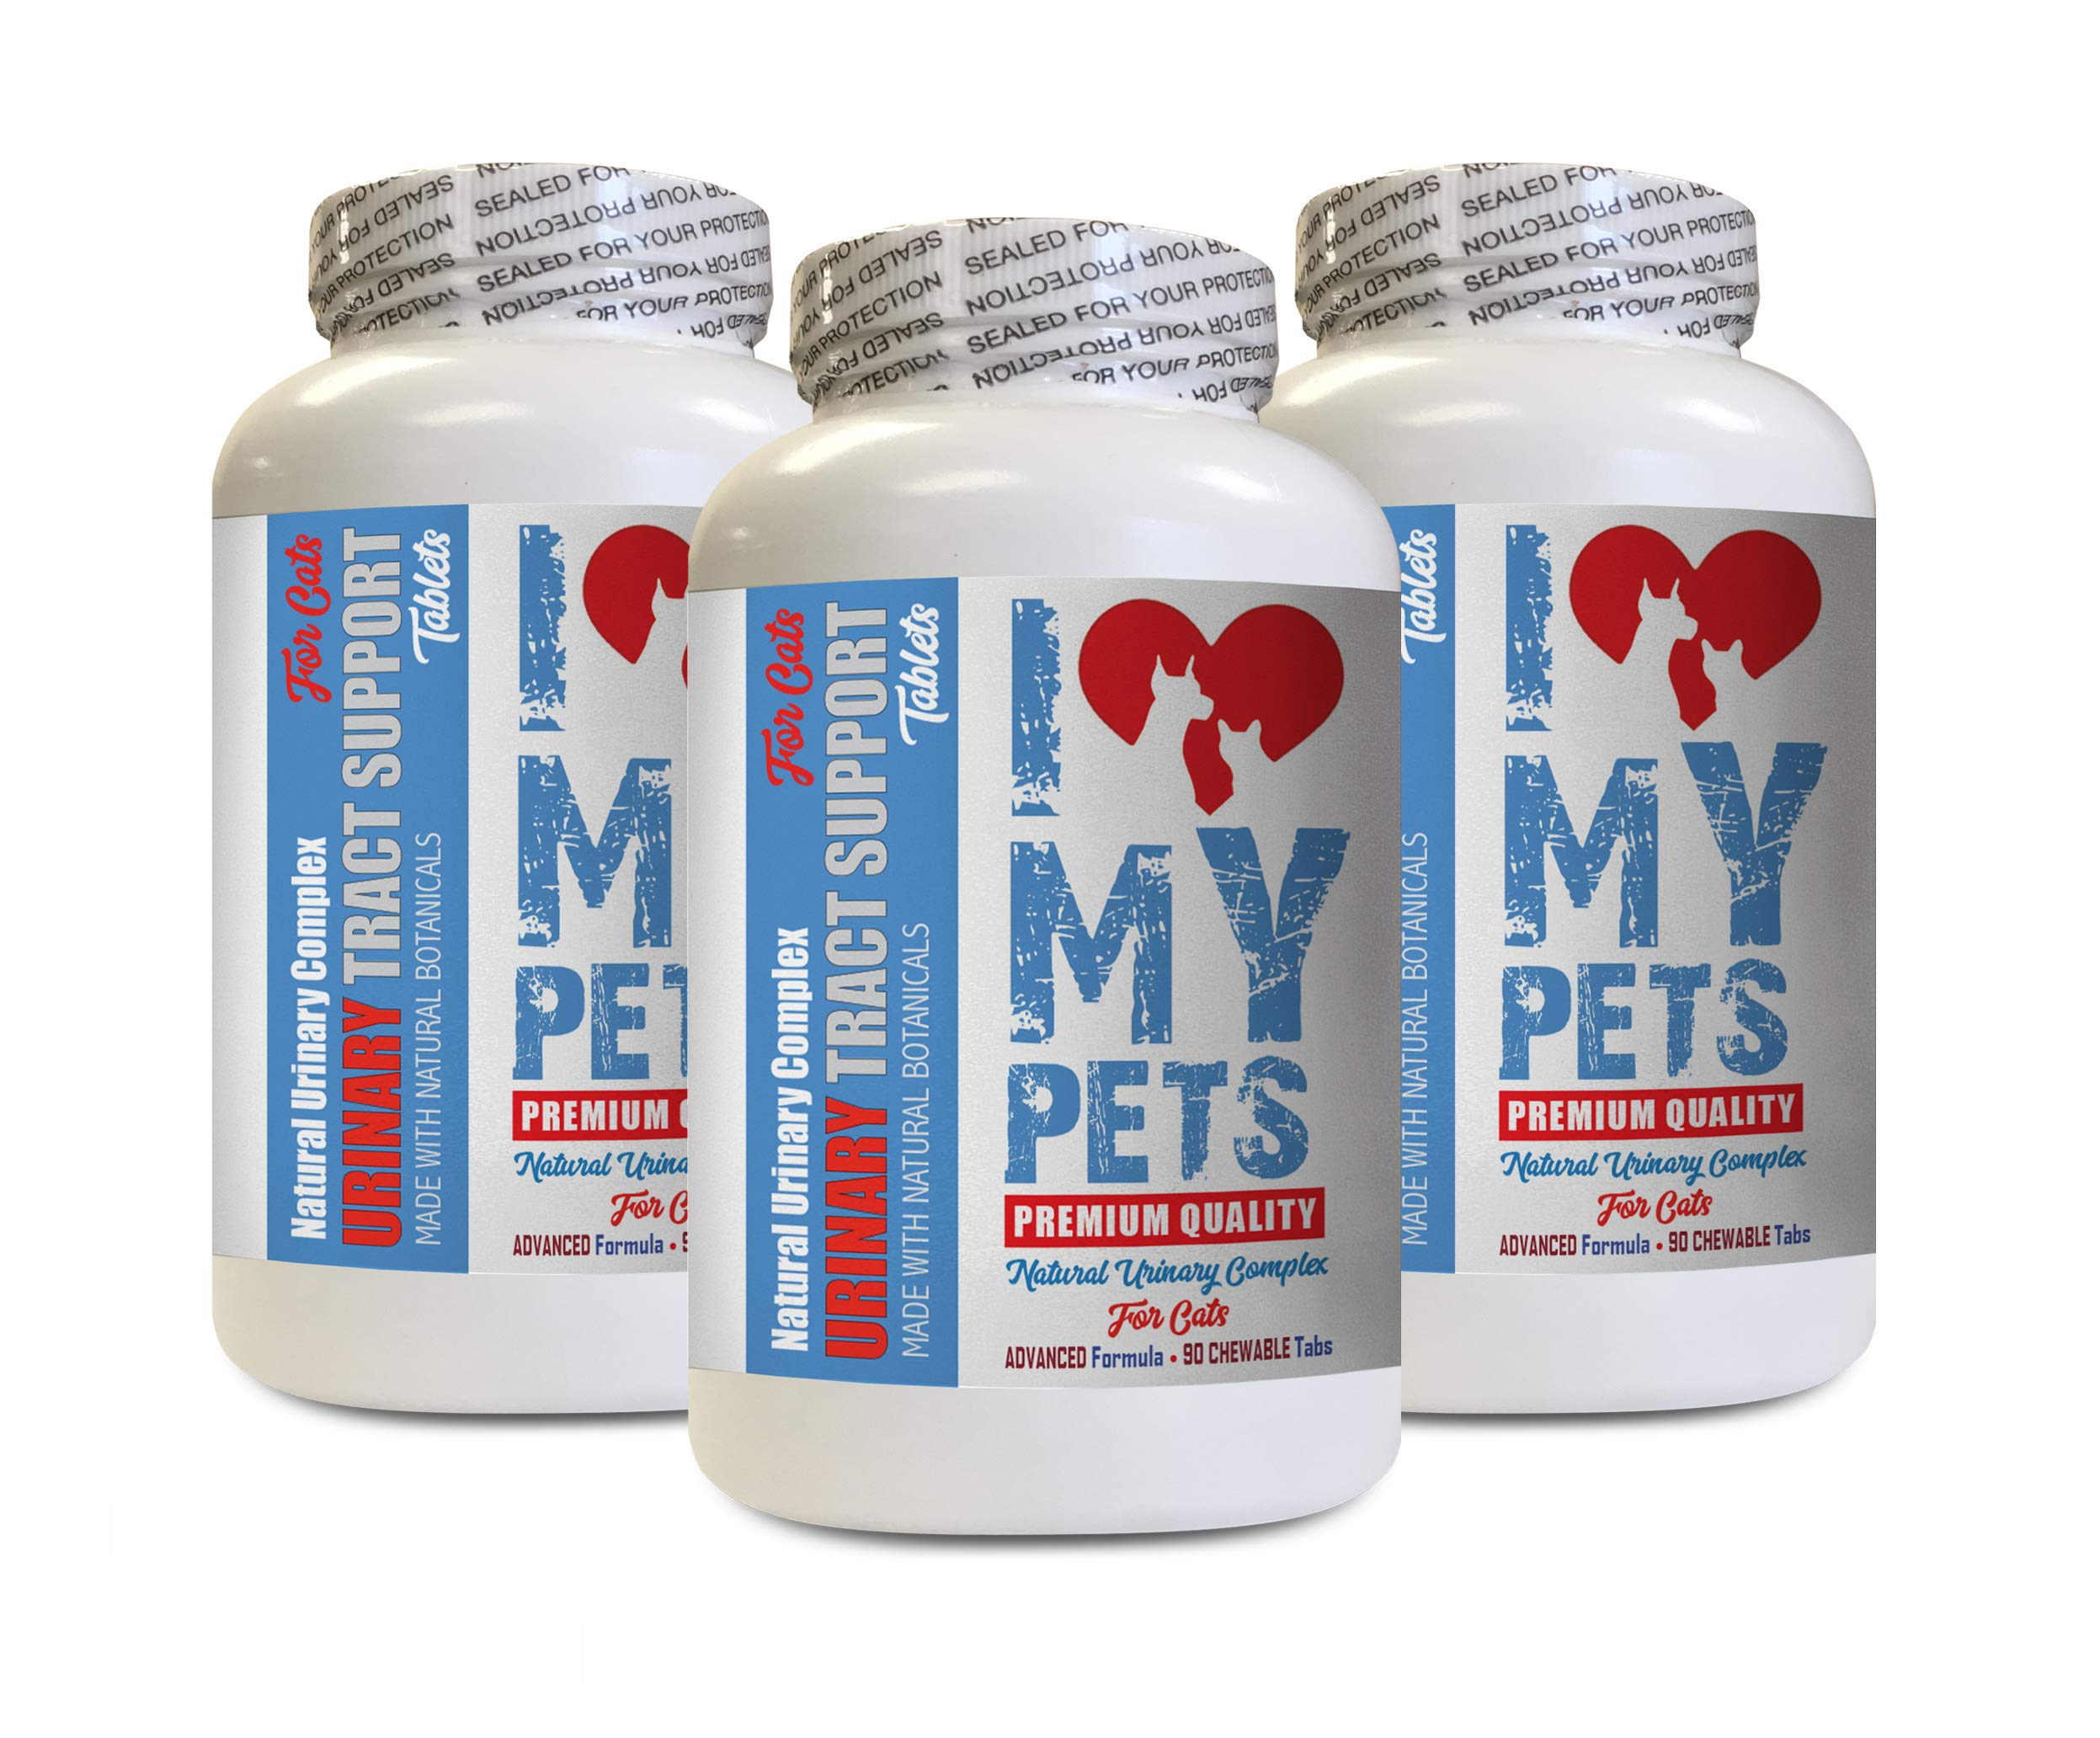 I LOVE MY PETS LLC Urinary Supplements for Cats - CAT Urinary Tract Support - Natural Complex - Premium - Cranberry Pills for Cats - 270 Treats (3 Bottles) by I LOVE MY PETS LLC